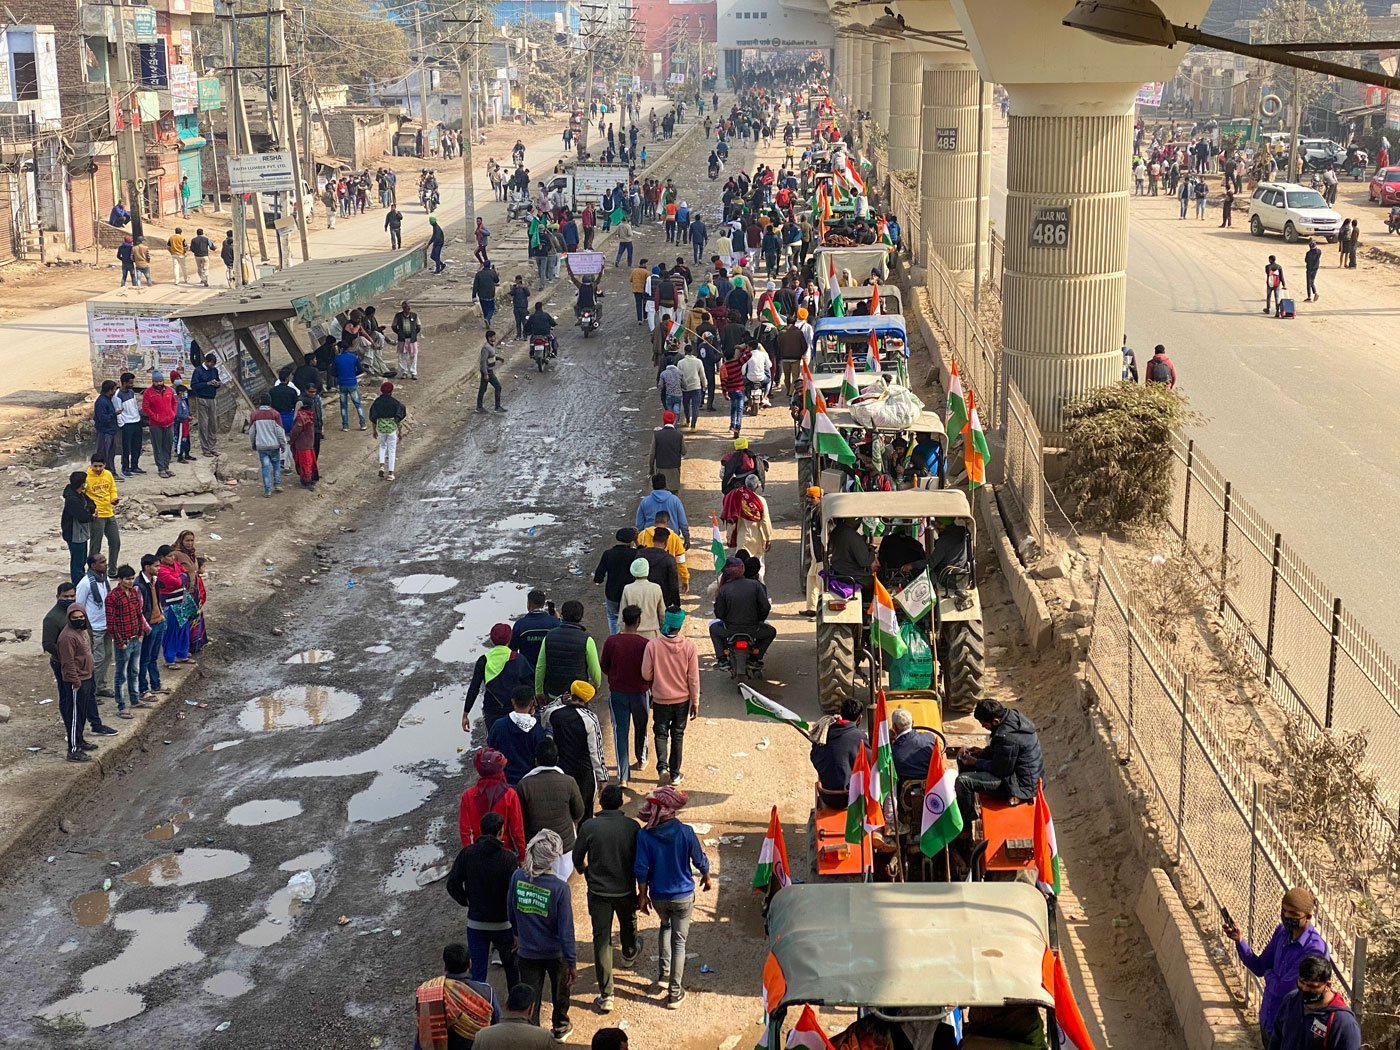 The convoy of farmers' tractors from Tikri was moving peacefully when a small group broke away, creating chaos at Nangloi chowk and disrupting an unprecedented and disciplined citizen's Republic Day parade